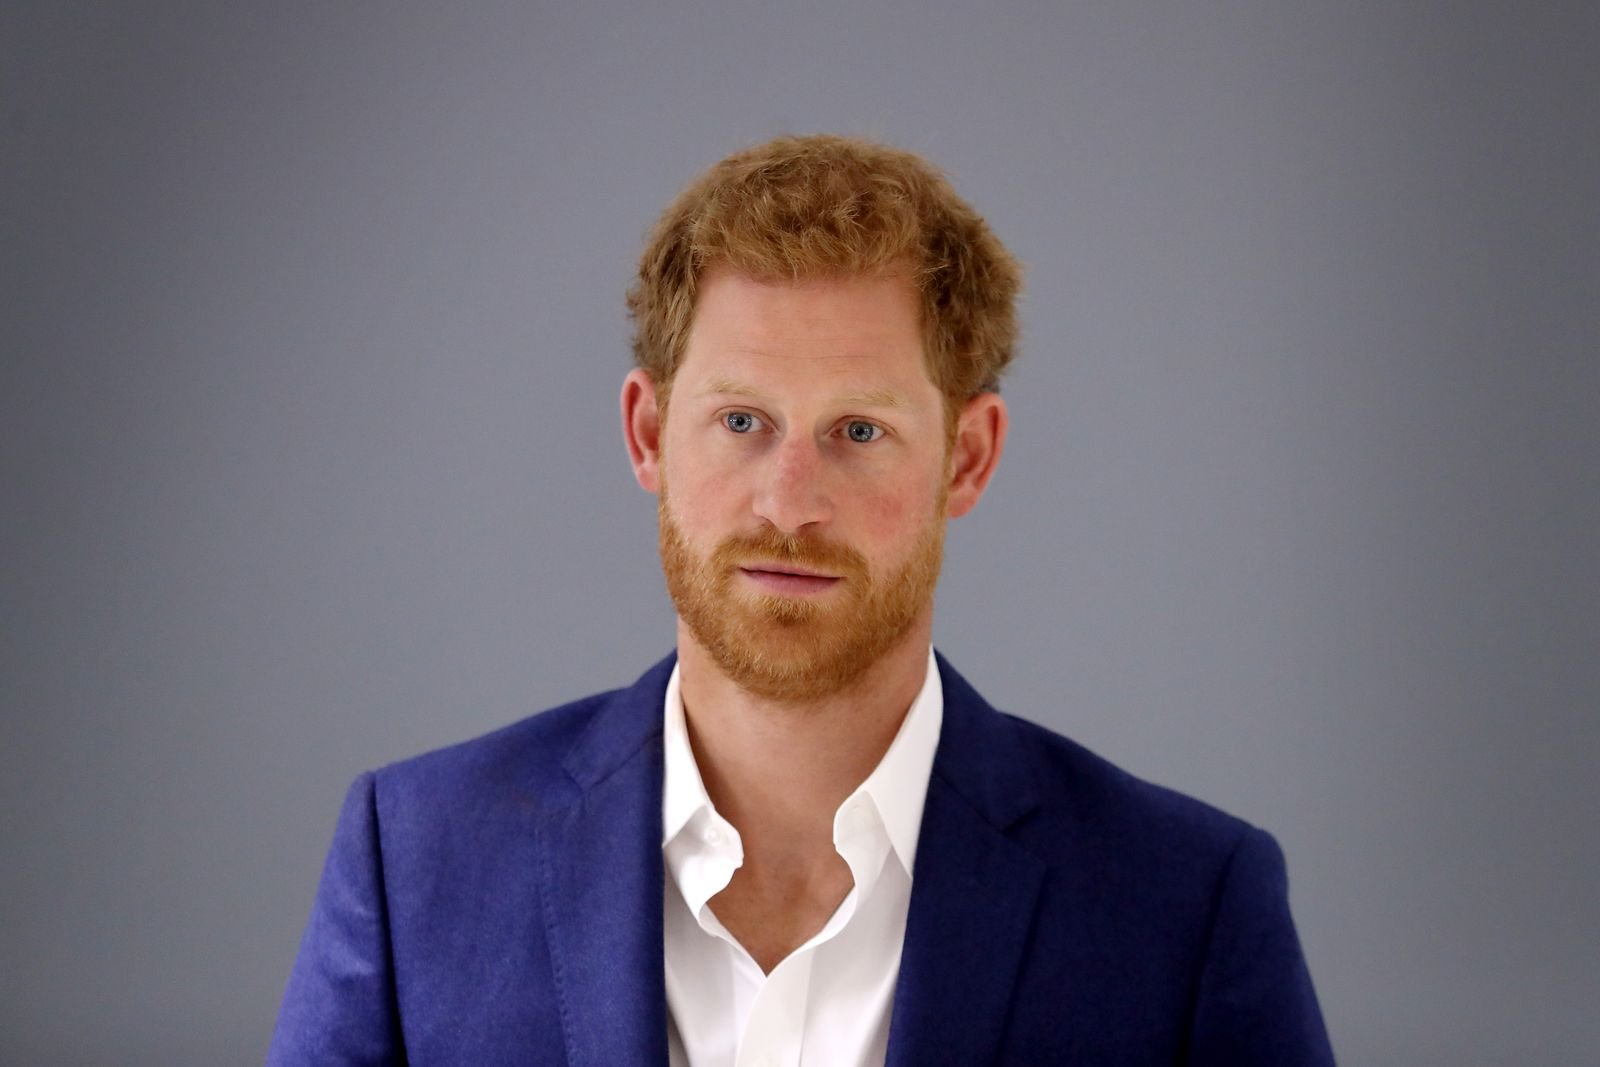 Prince Harry at the NHS Manchester Resilience Hub on September 4, 2017 | Photo: Getty Images